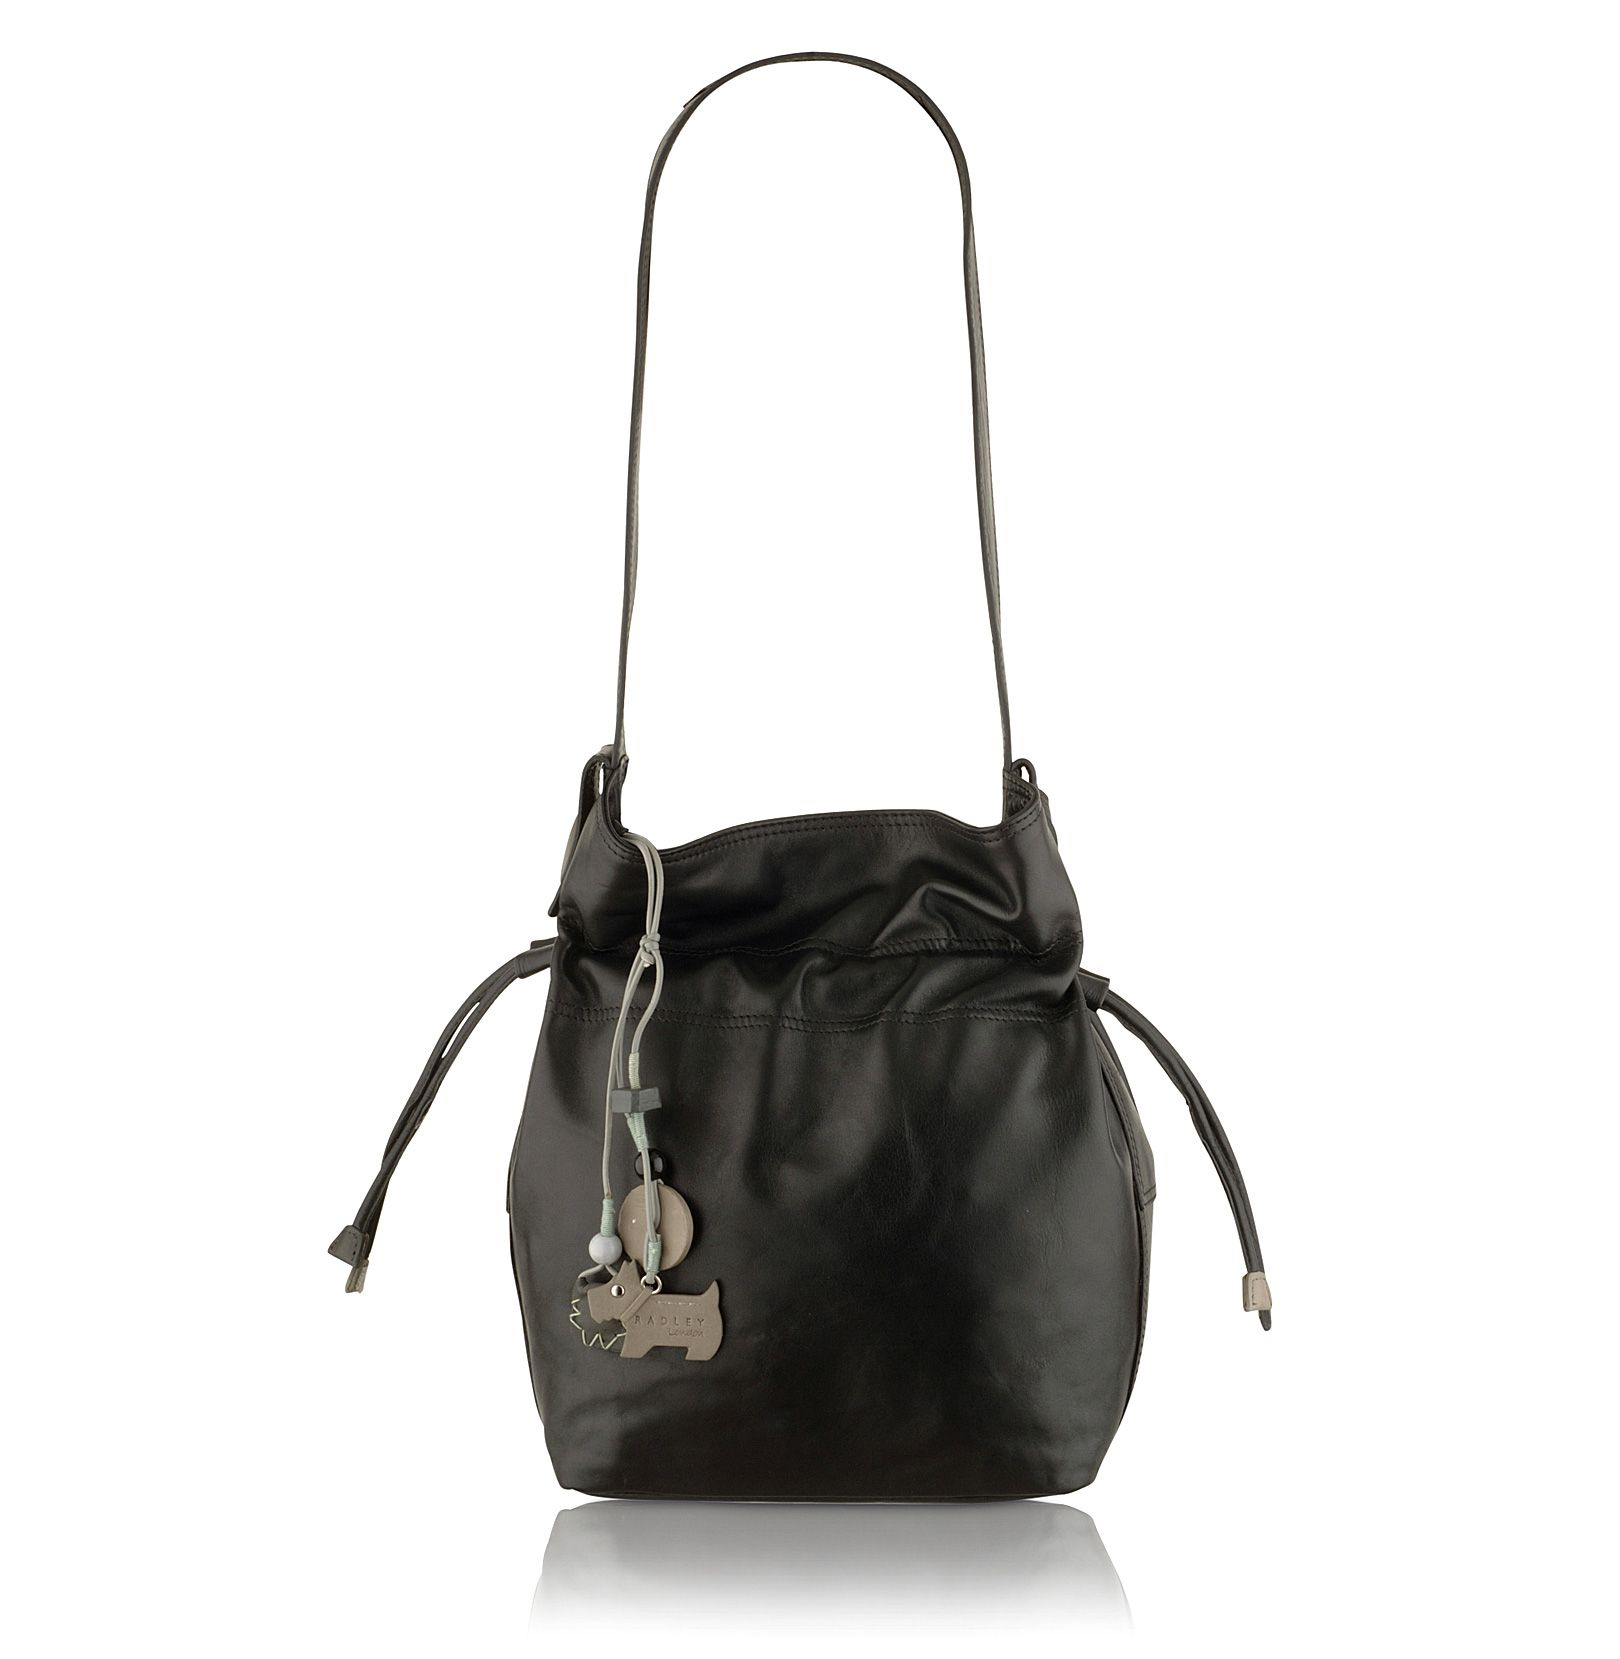 Walpole small leather drawstring bag